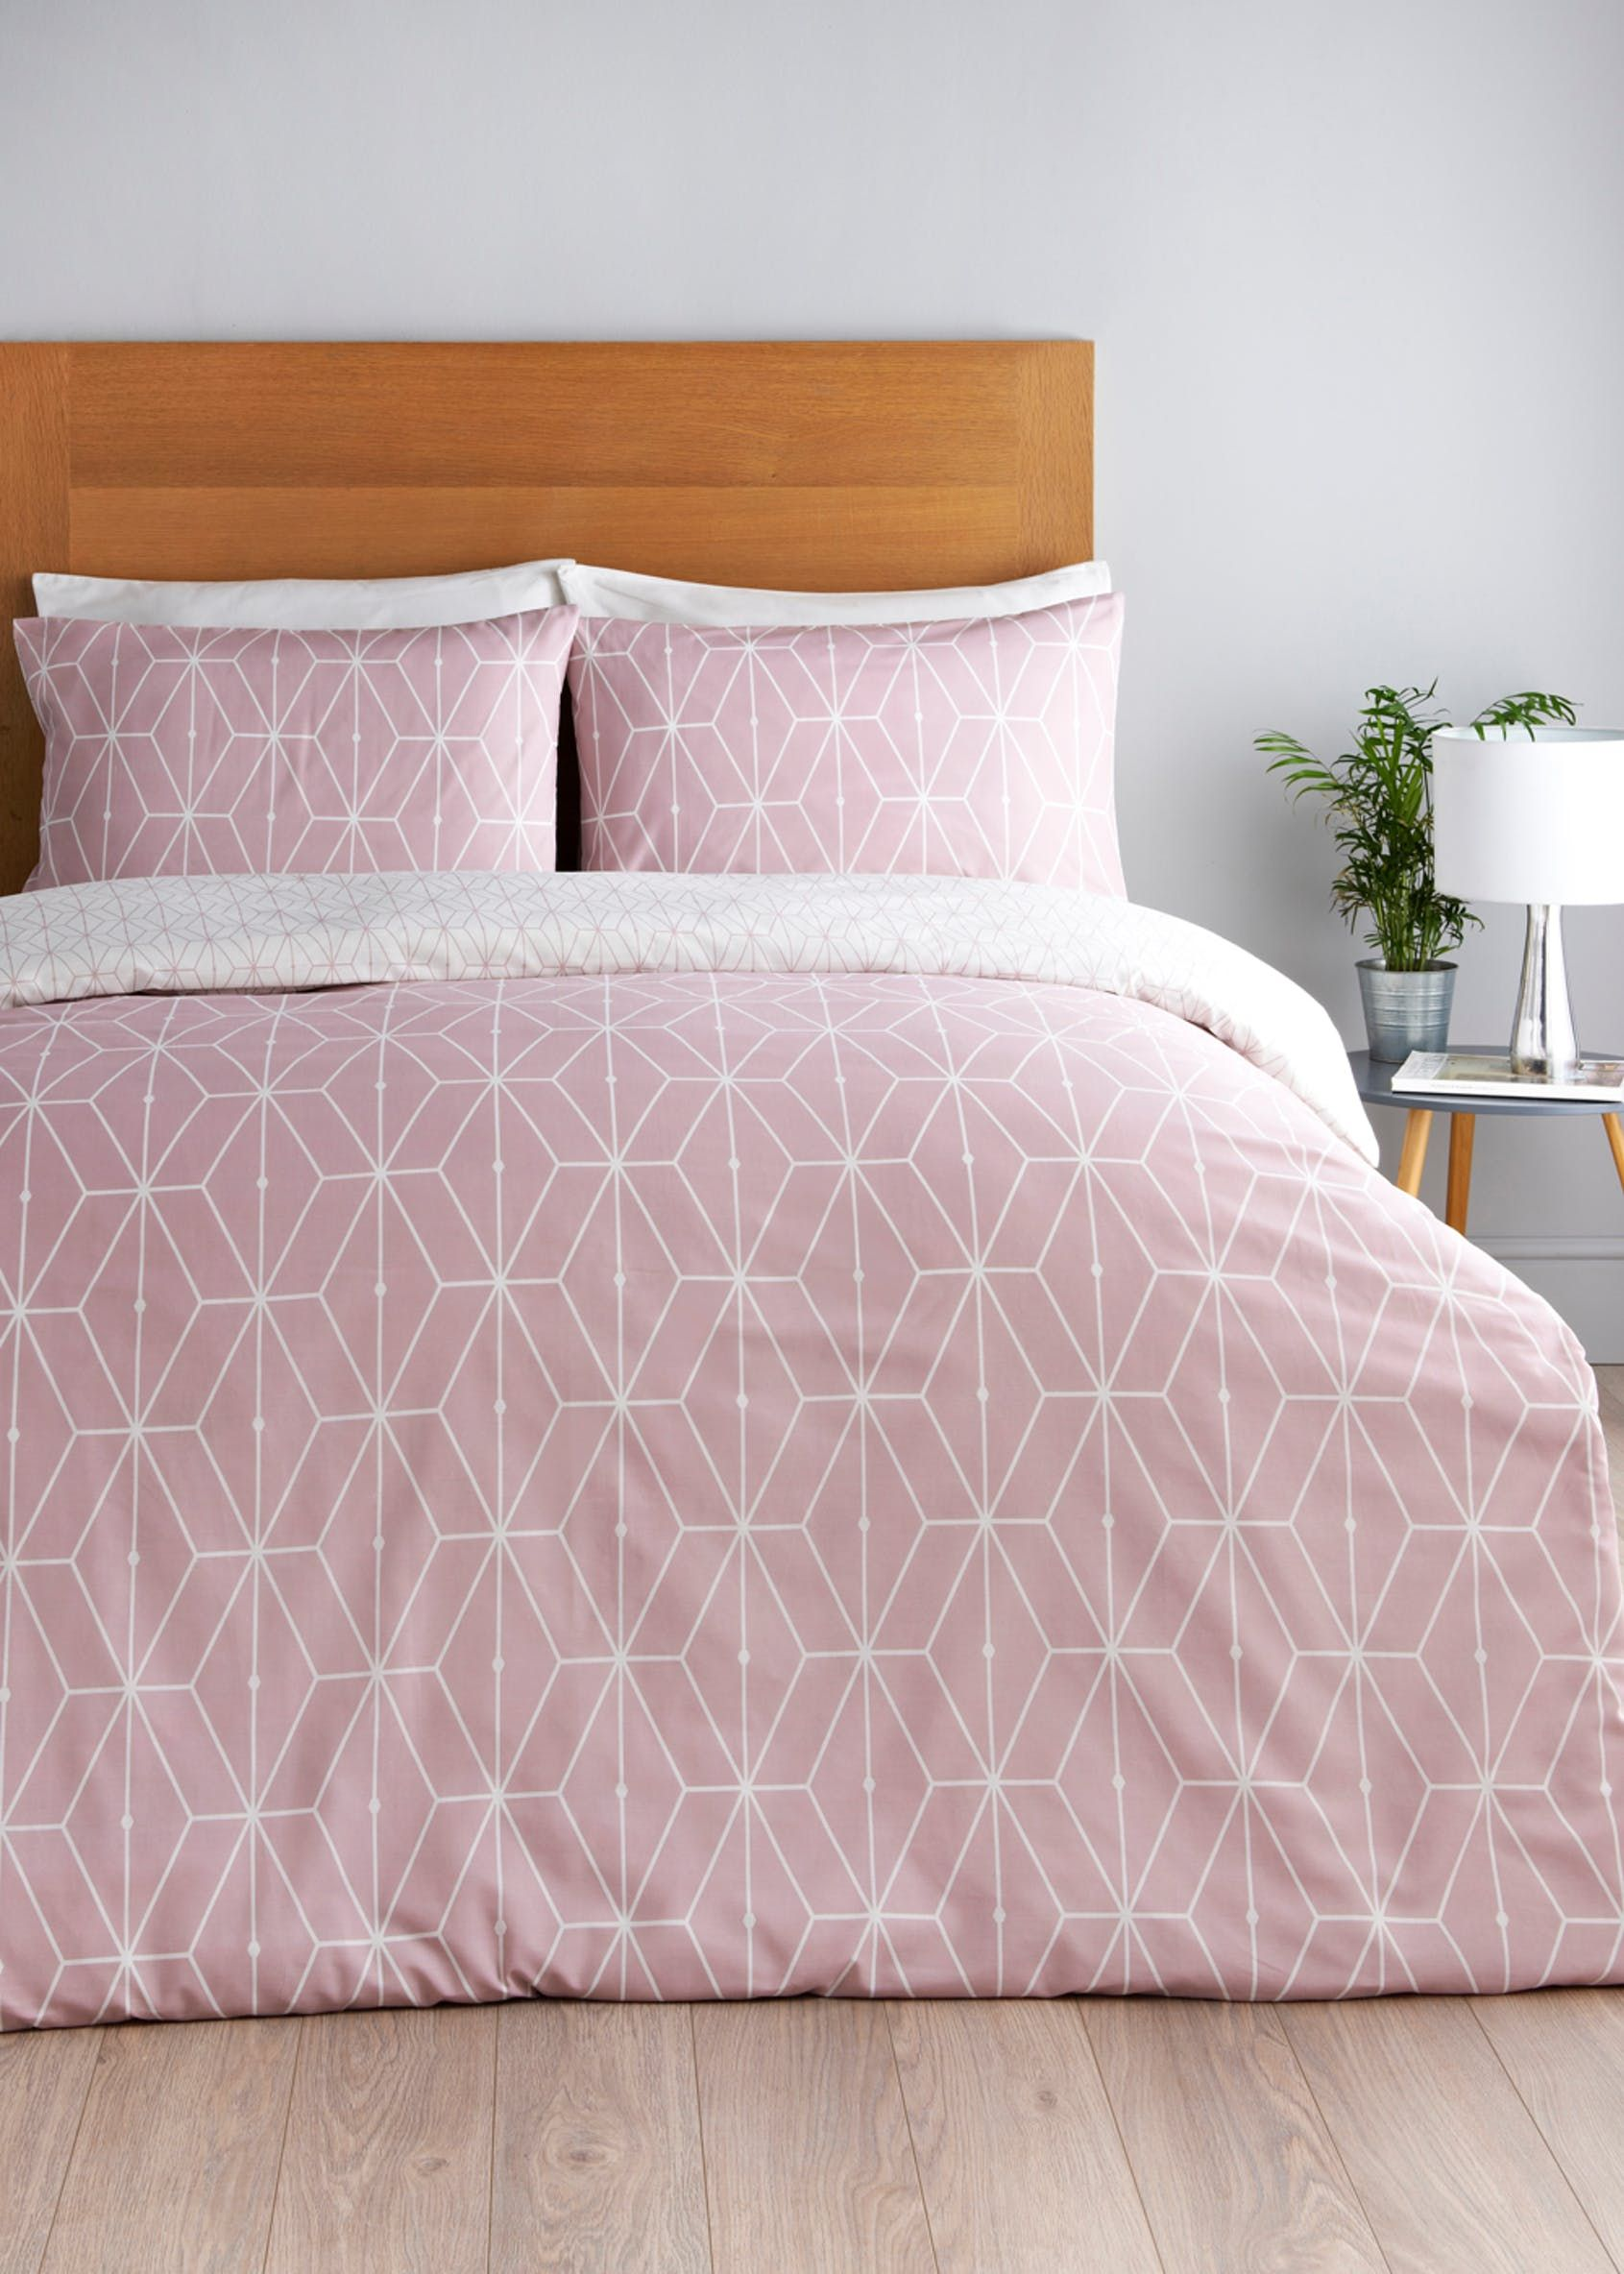 DUVET Protector Cover King Size